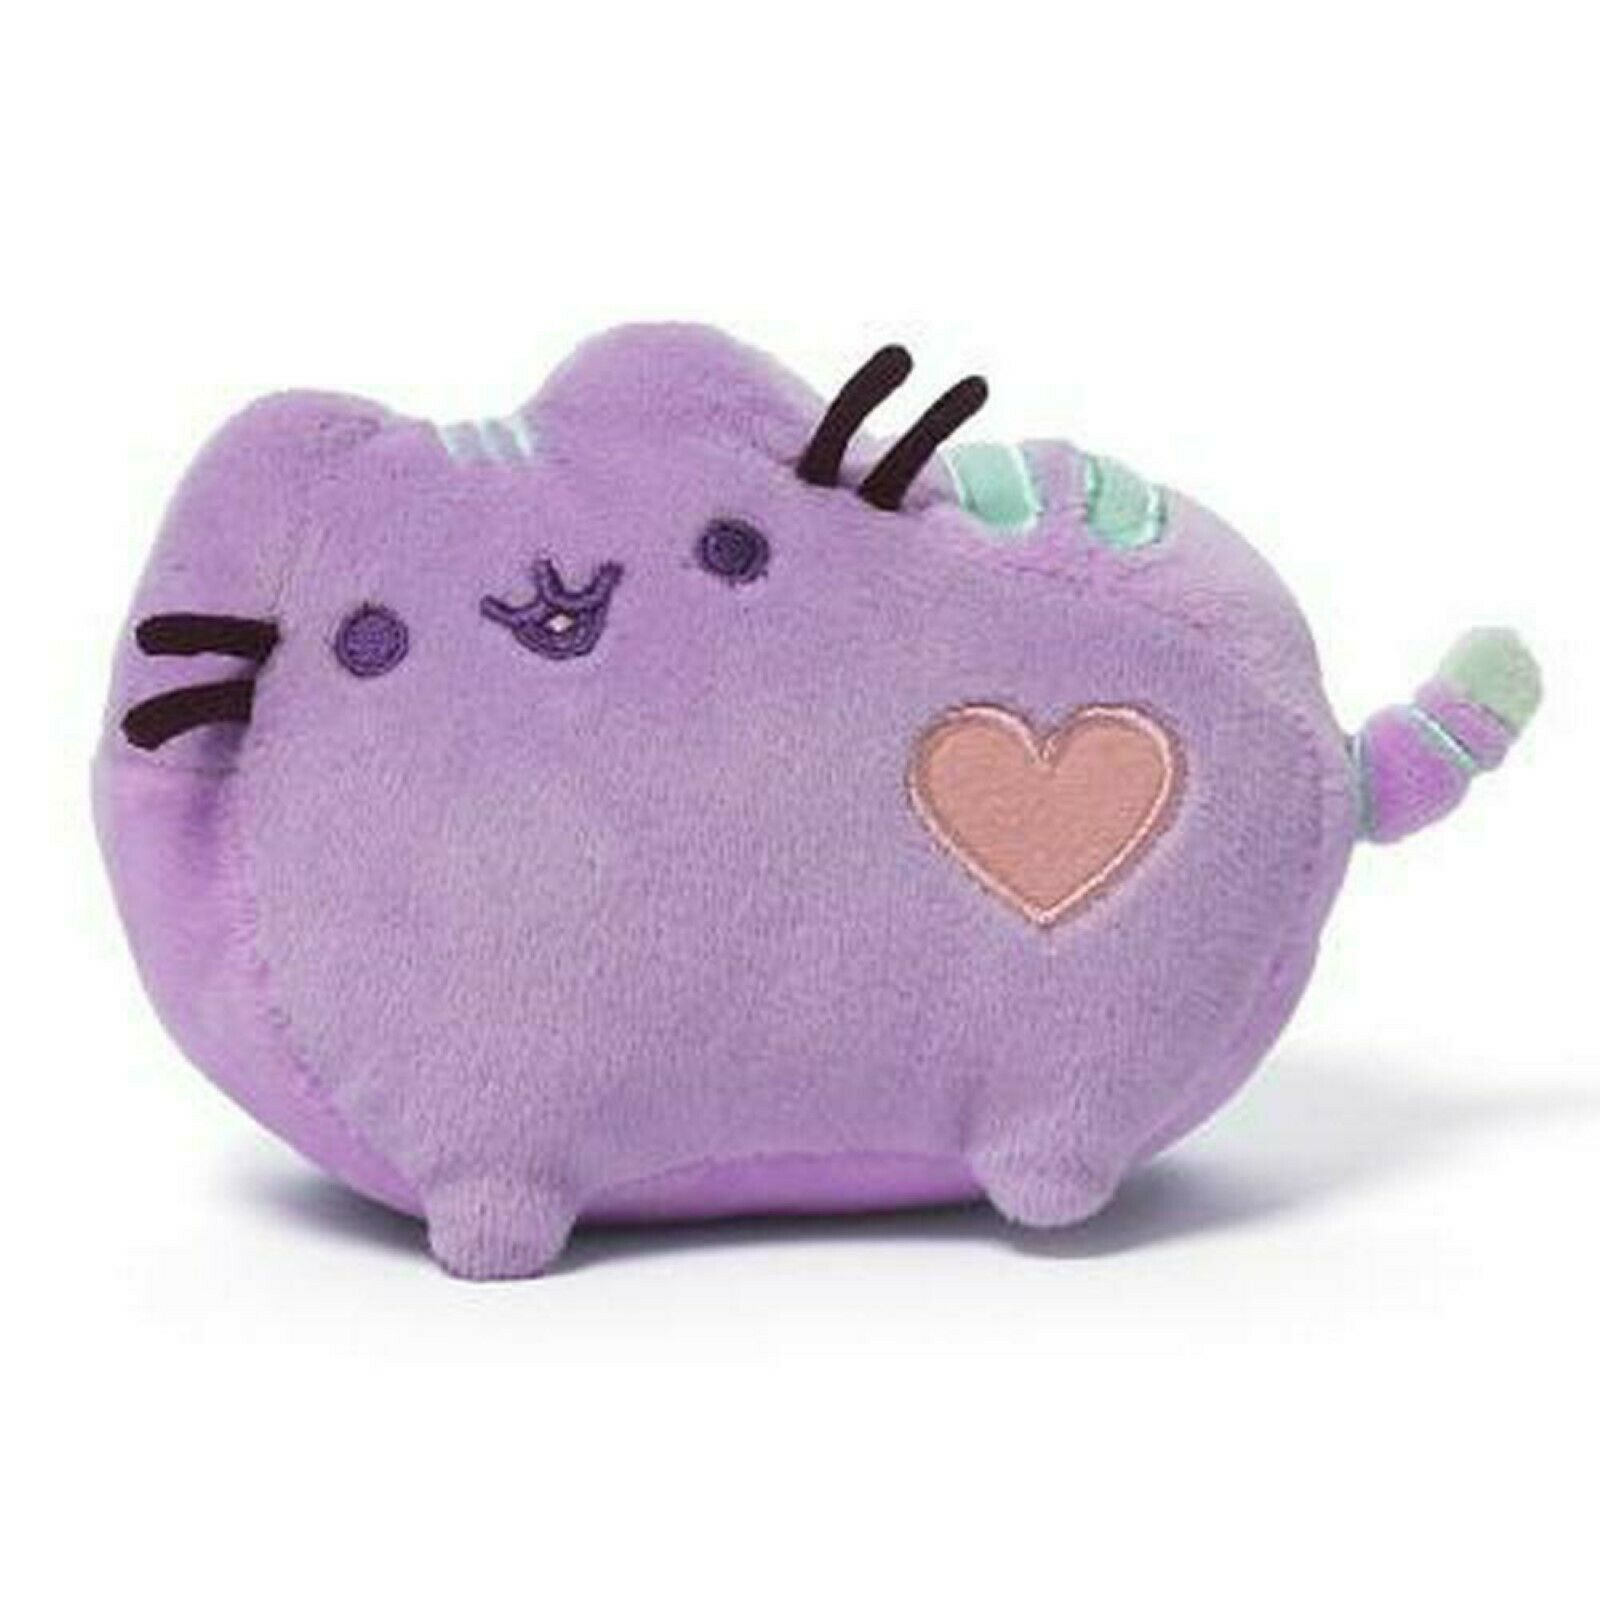 Pusheen The Cat Pastel Purple Plush Heart Genuine Gund